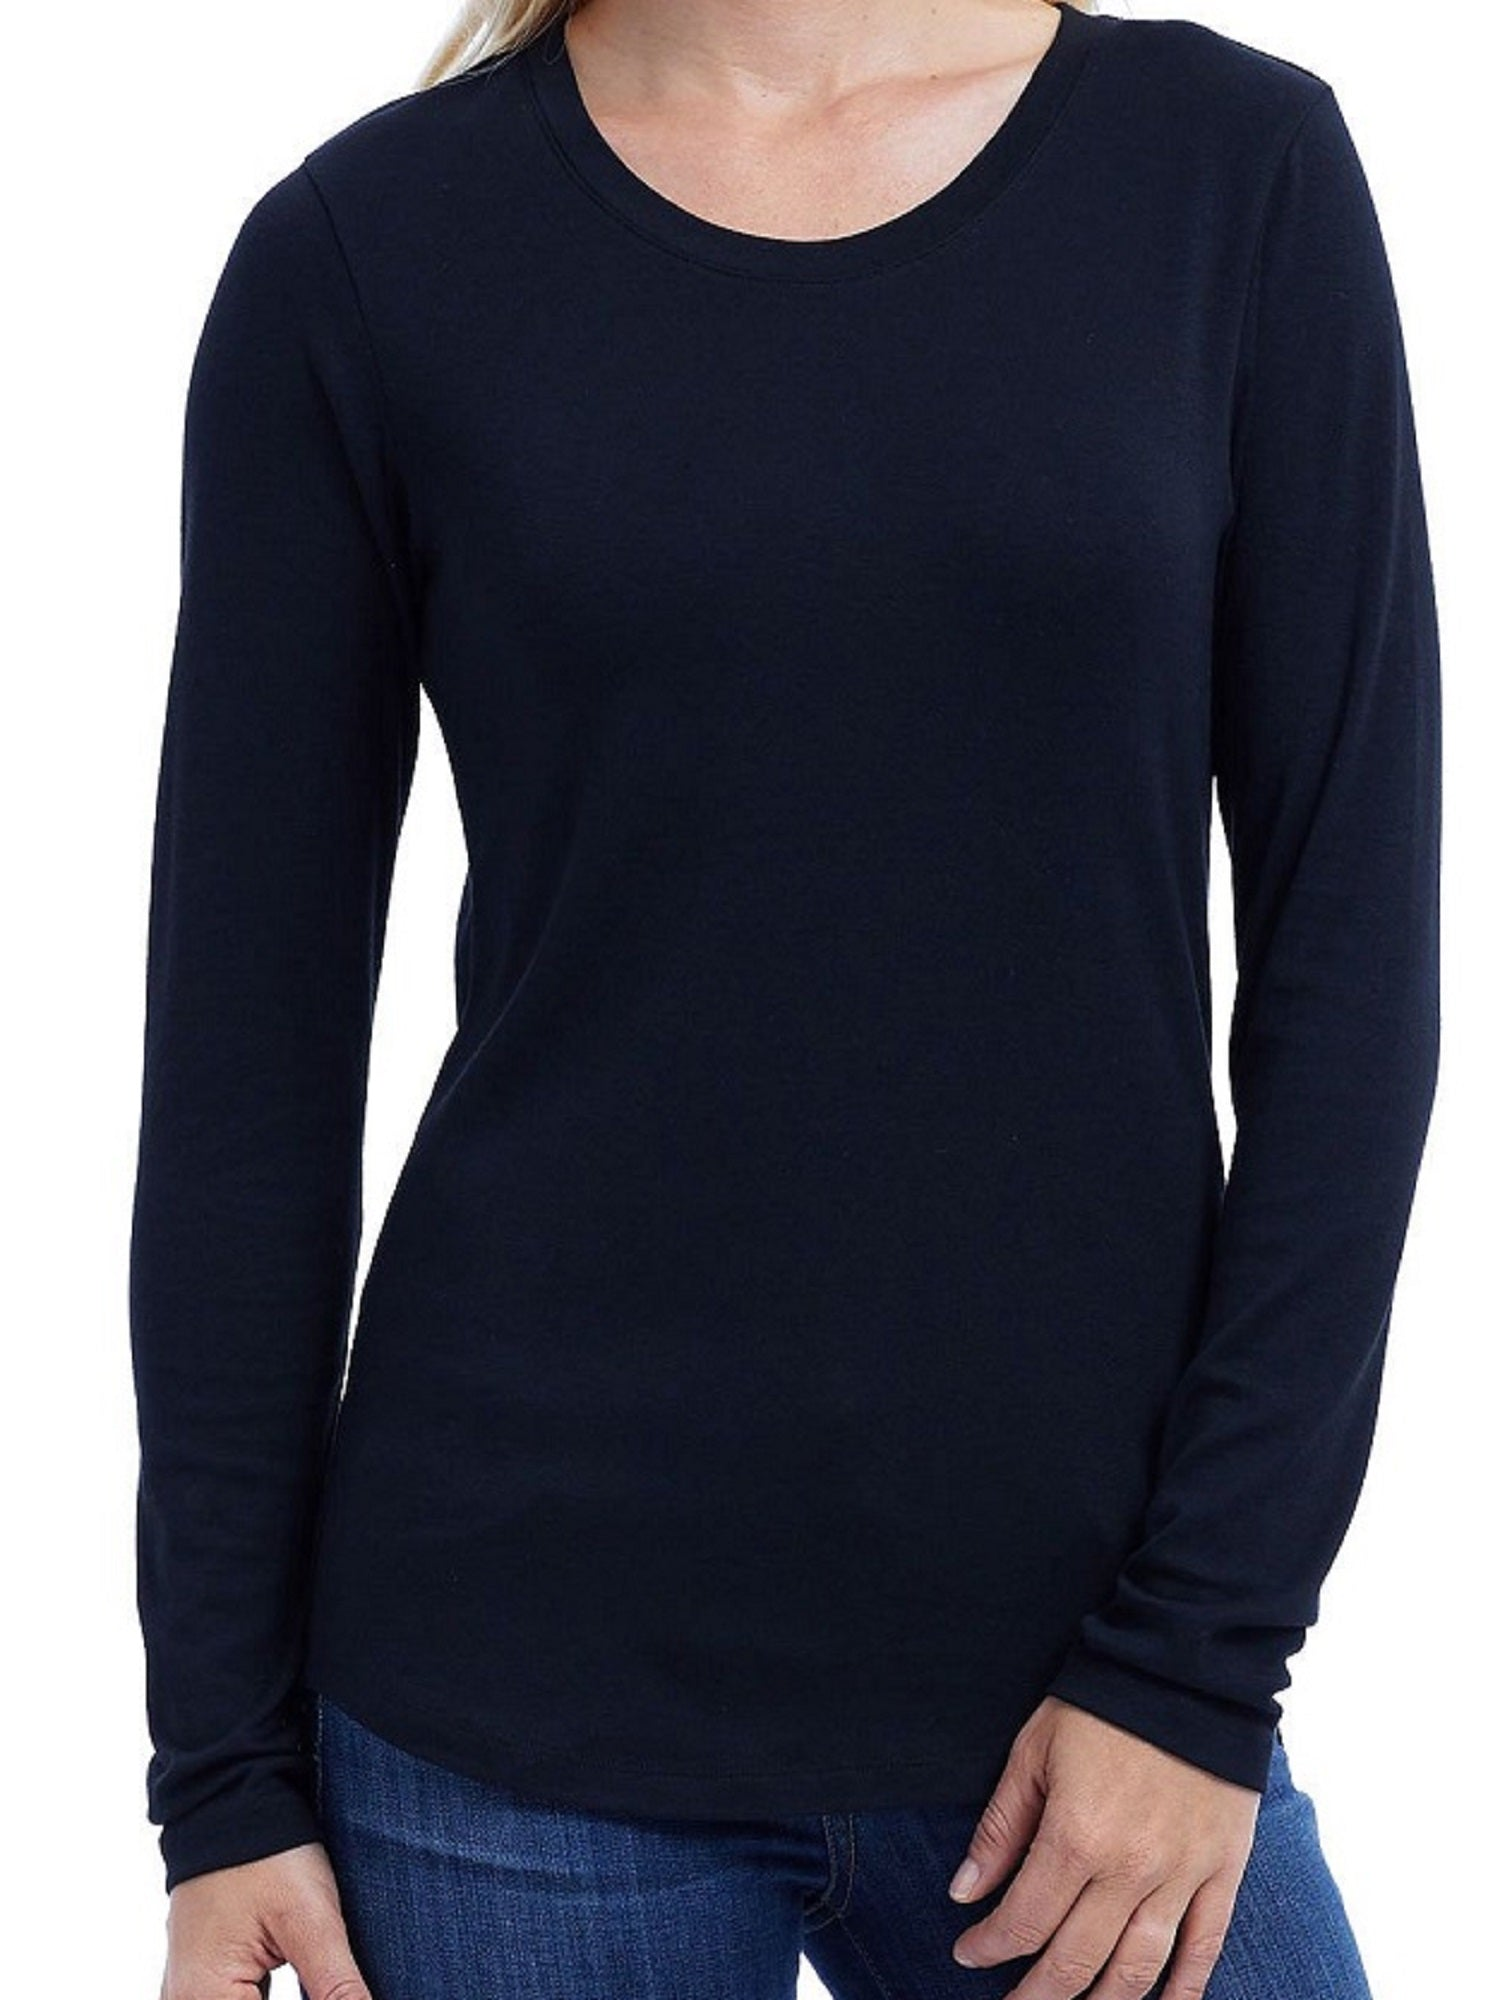 Eddie Bauer Women's Size Medium Scoop Neck Long Sleeve Tee, Black